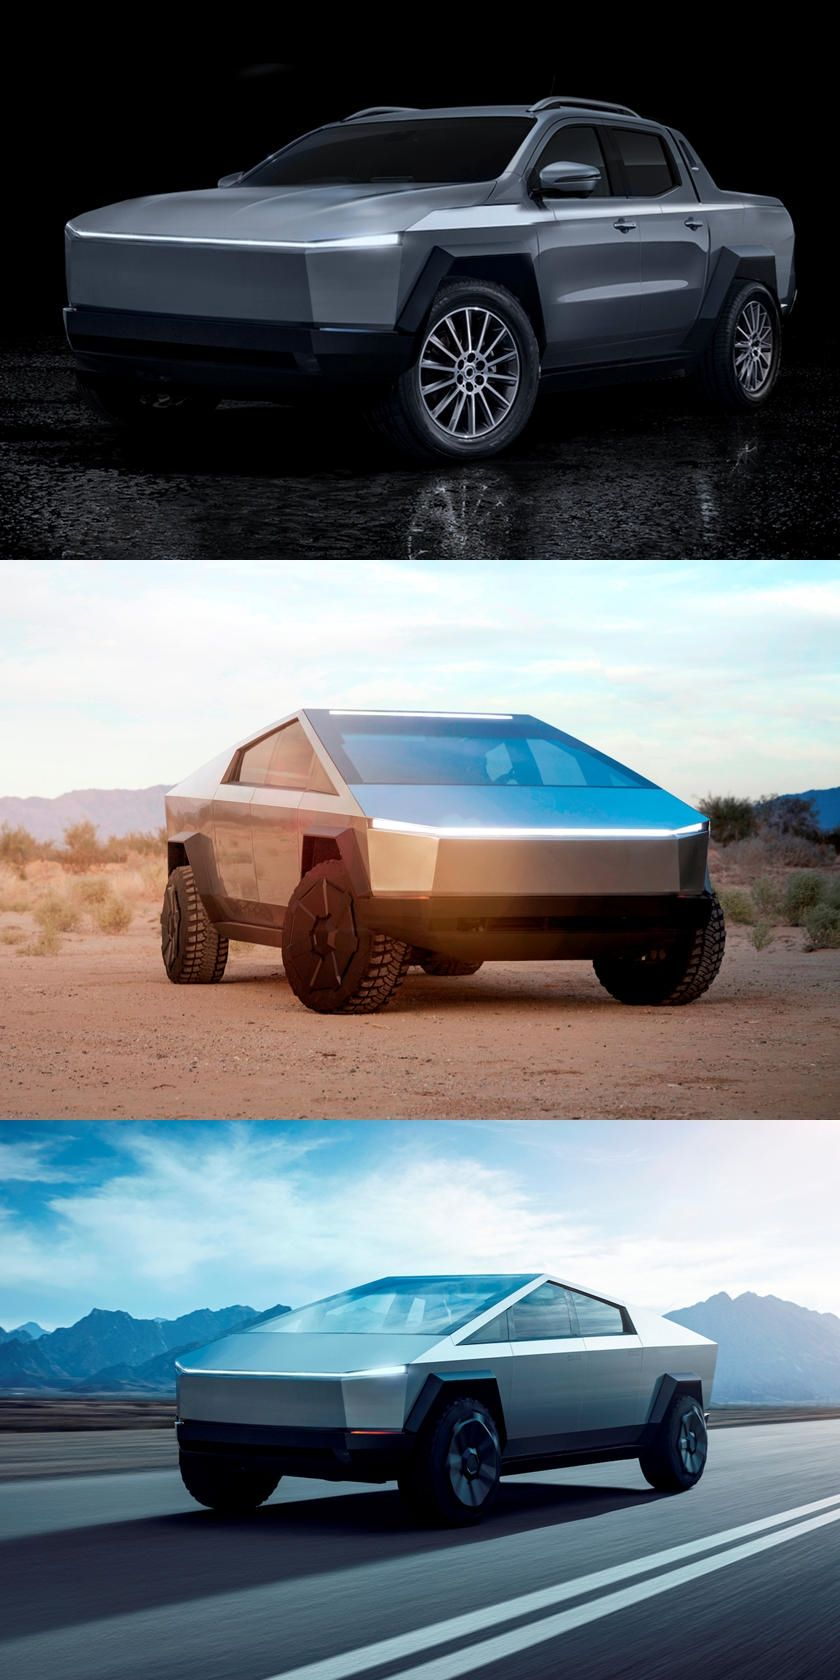 Tesla Cybertruck Is Being Completely Redesigned Safety Concerns Have Prompted Tesla To Rethink The Cybertruck S Design Tesla Electric Pickup Truck Ford Ranger